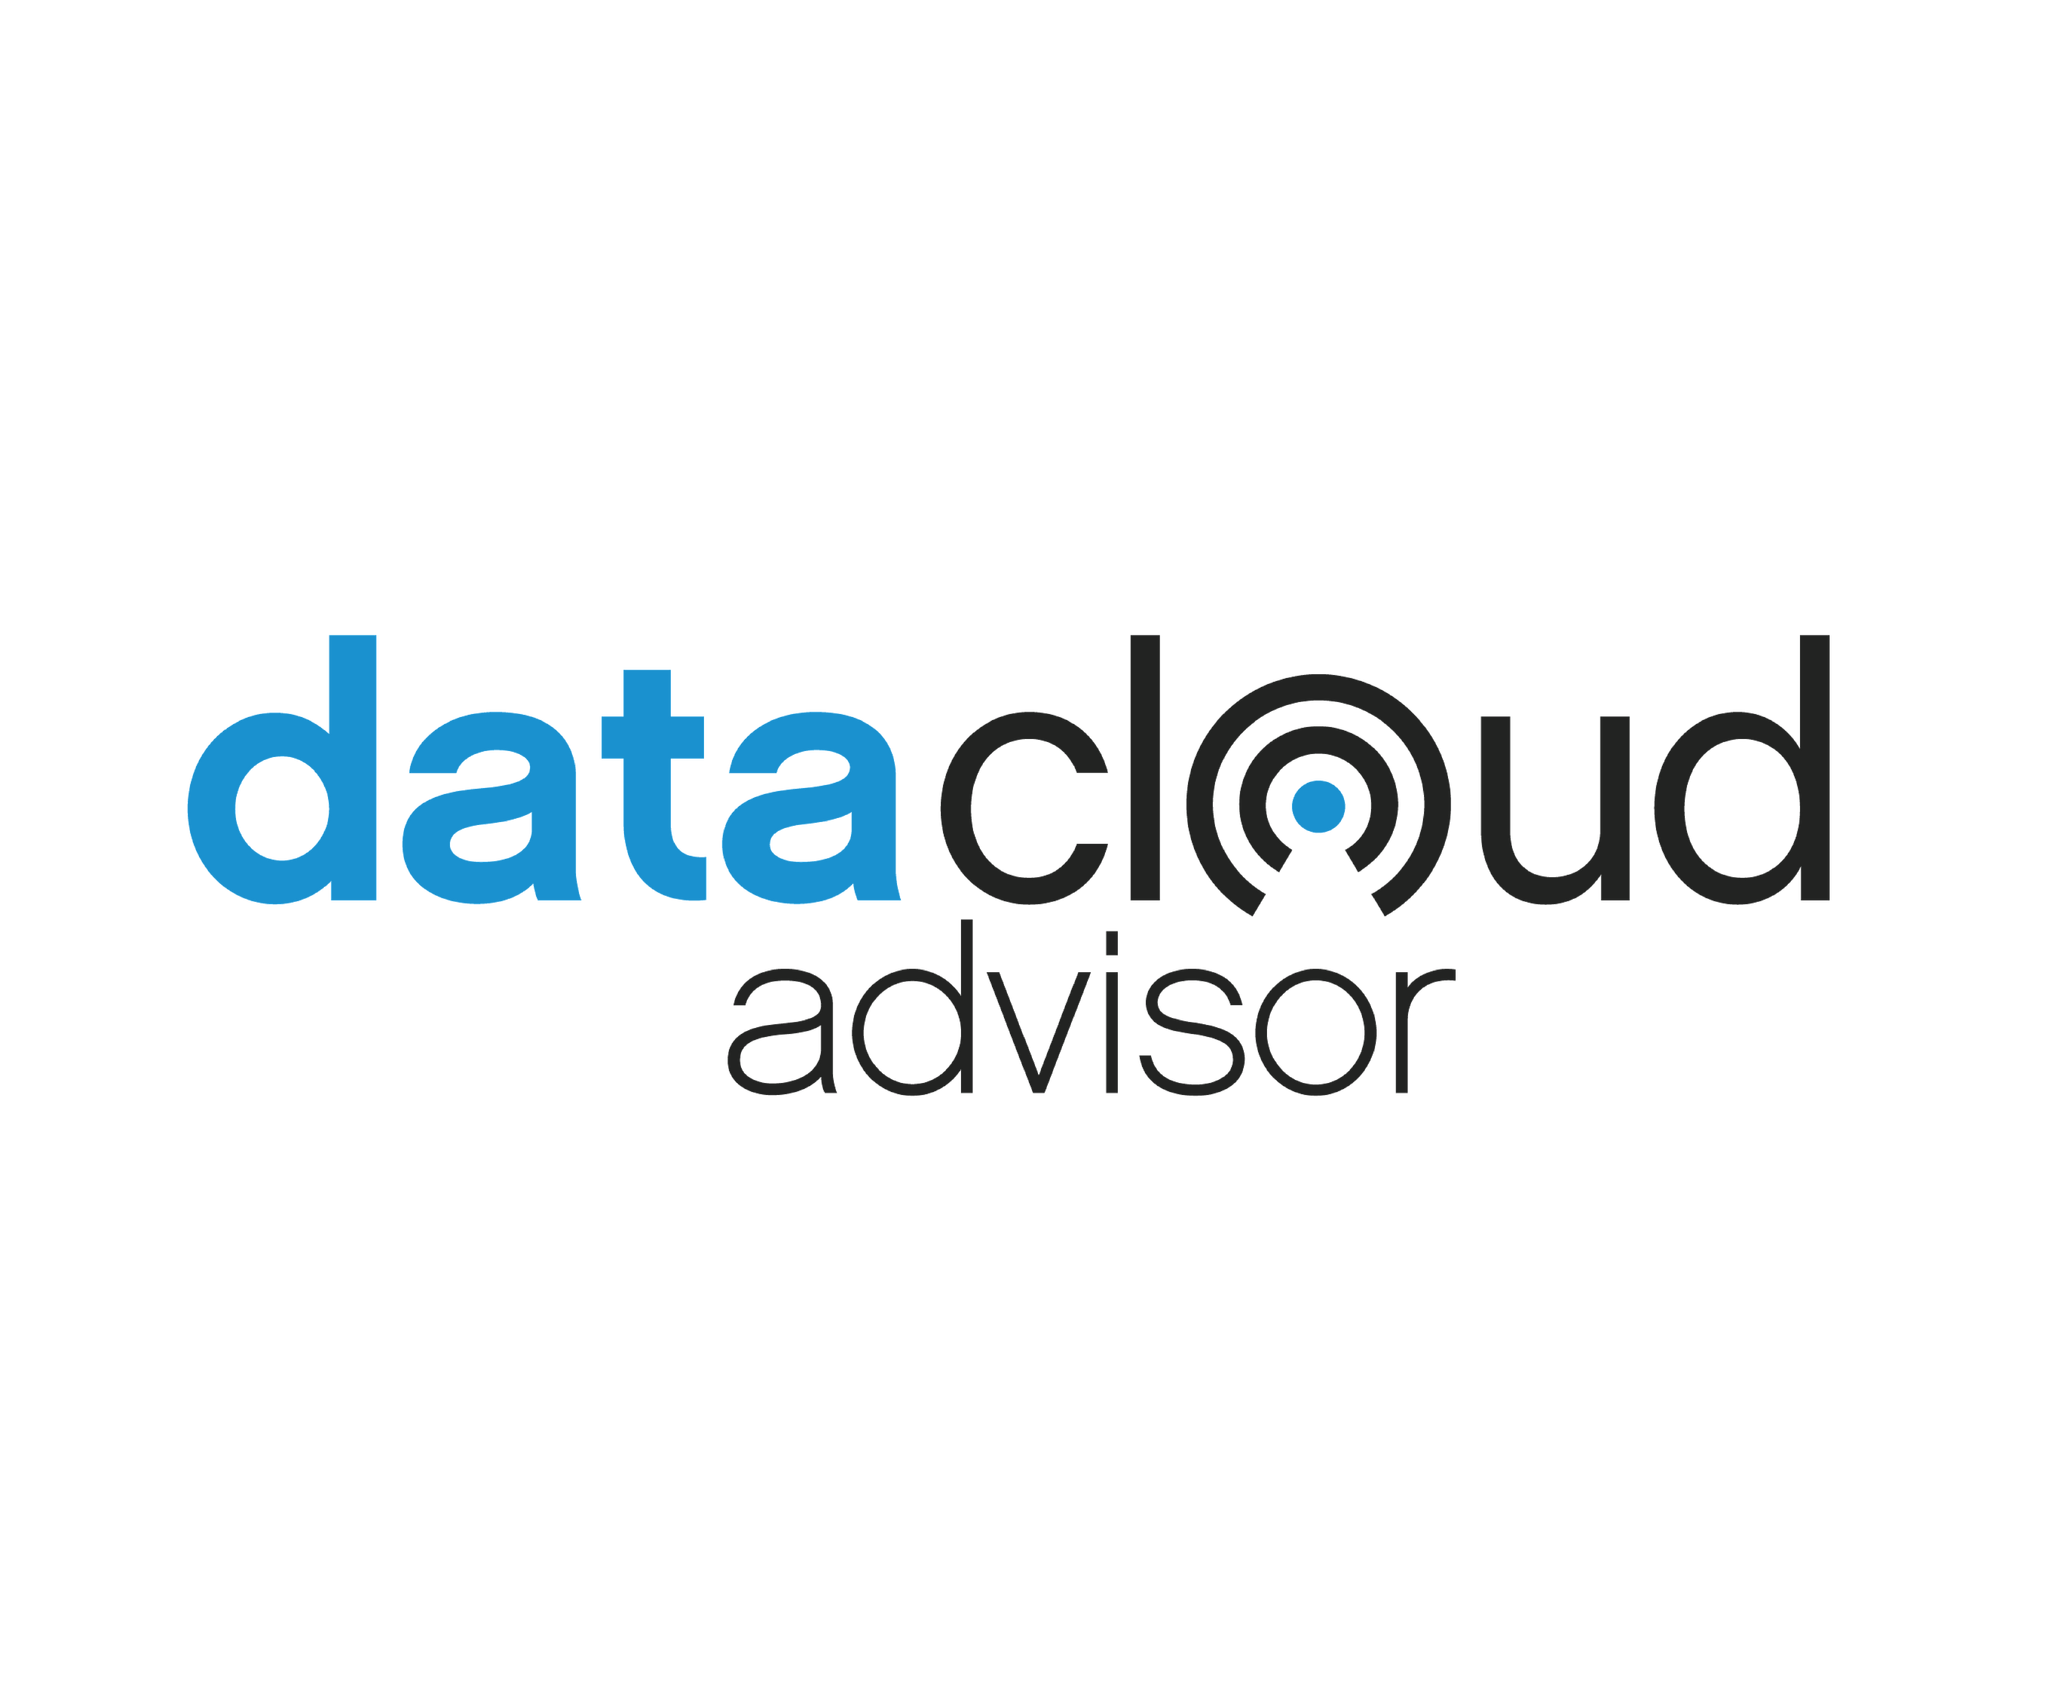 Data Coud Advisor